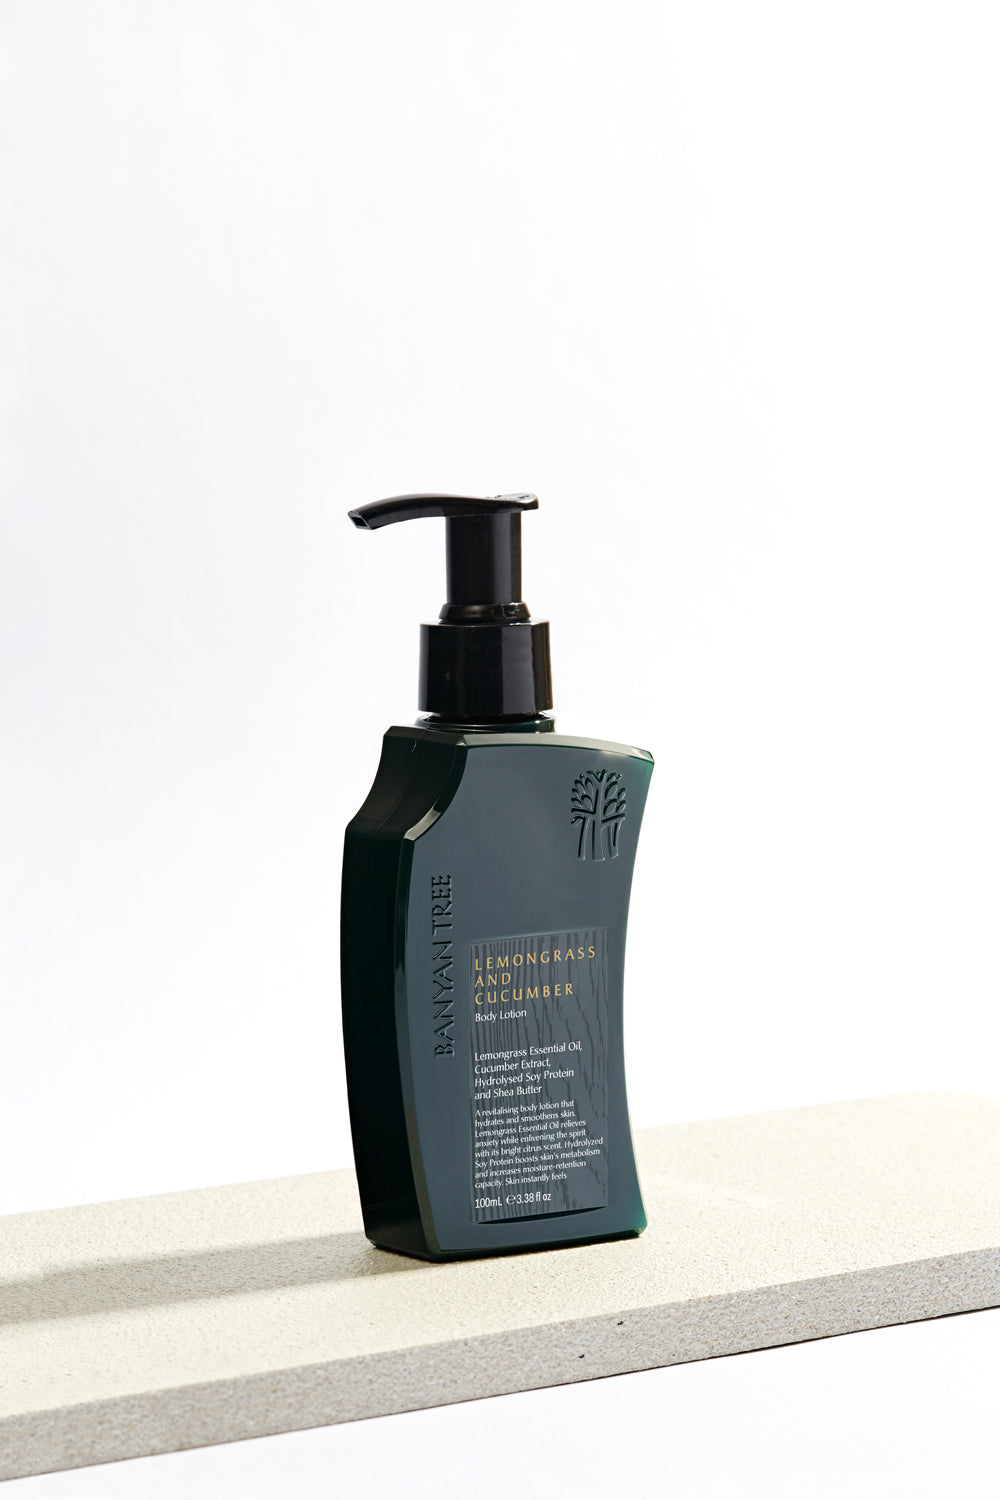 Lemongrass and Cucumber Body Lotion - Banyan Tree Gallery